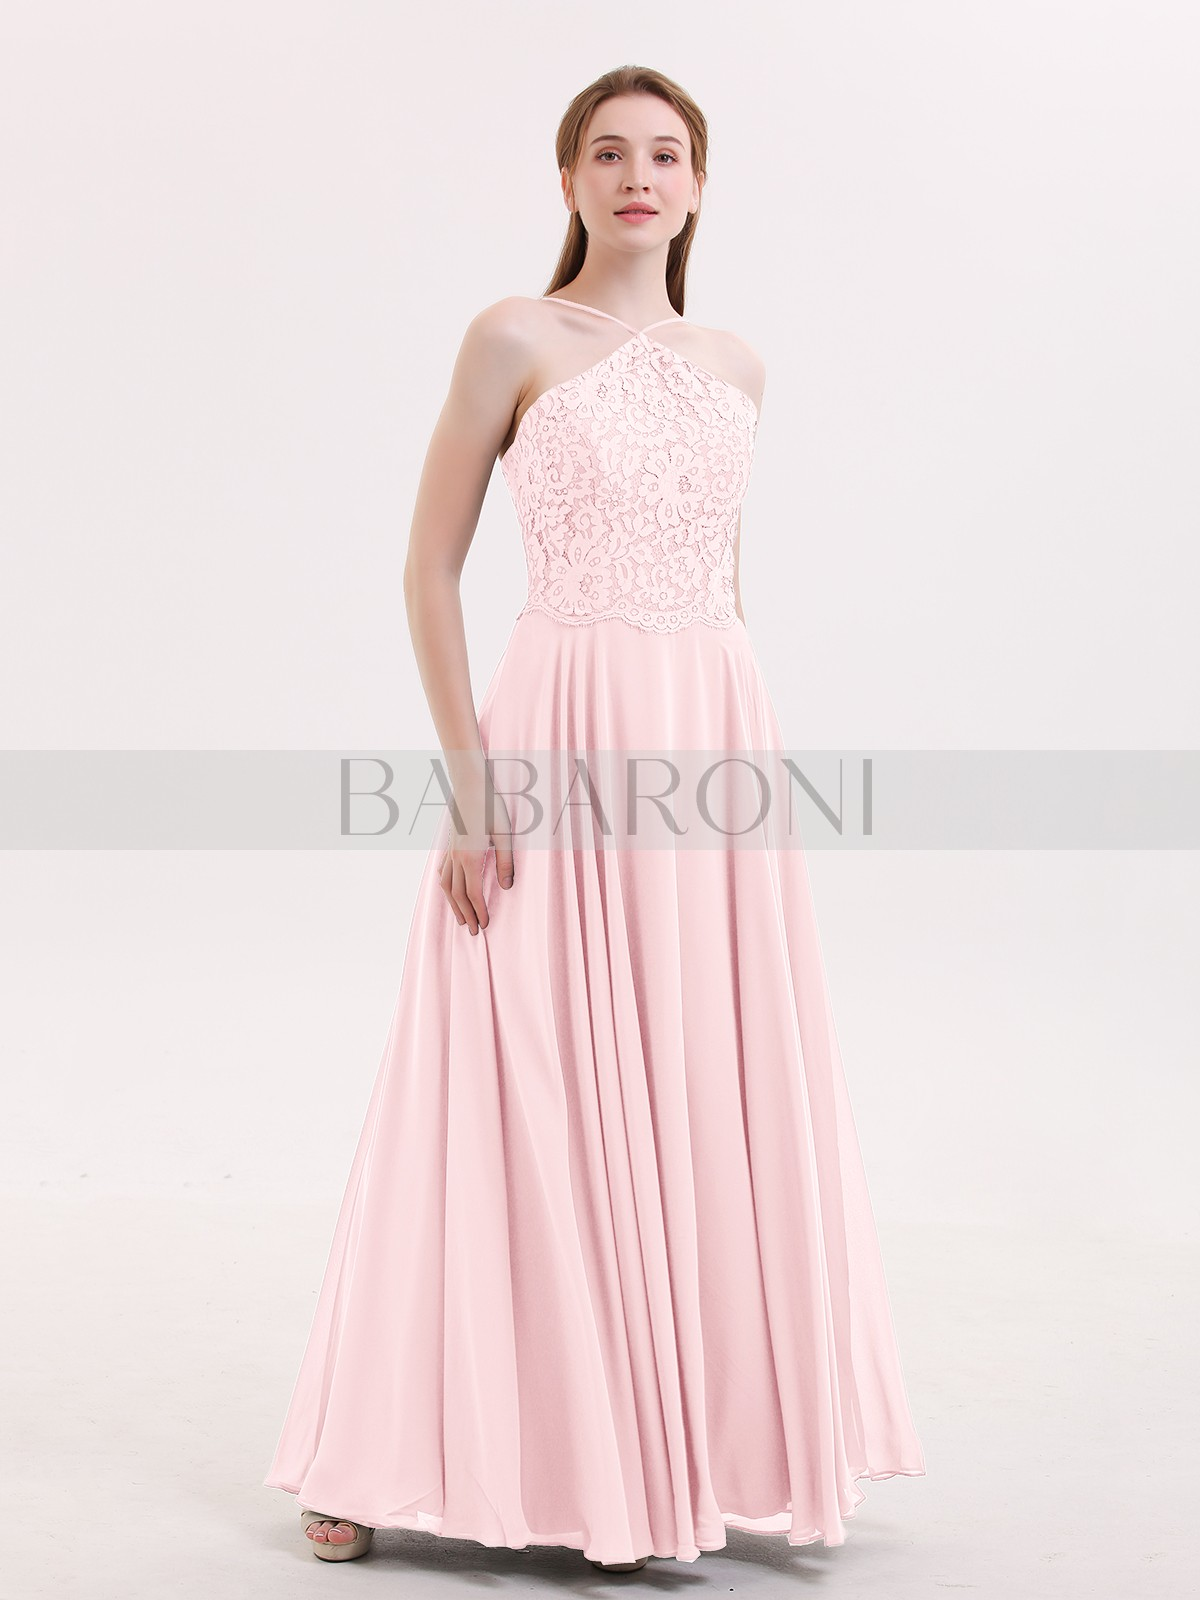 50% off good selling official store Babaroni Tallulah